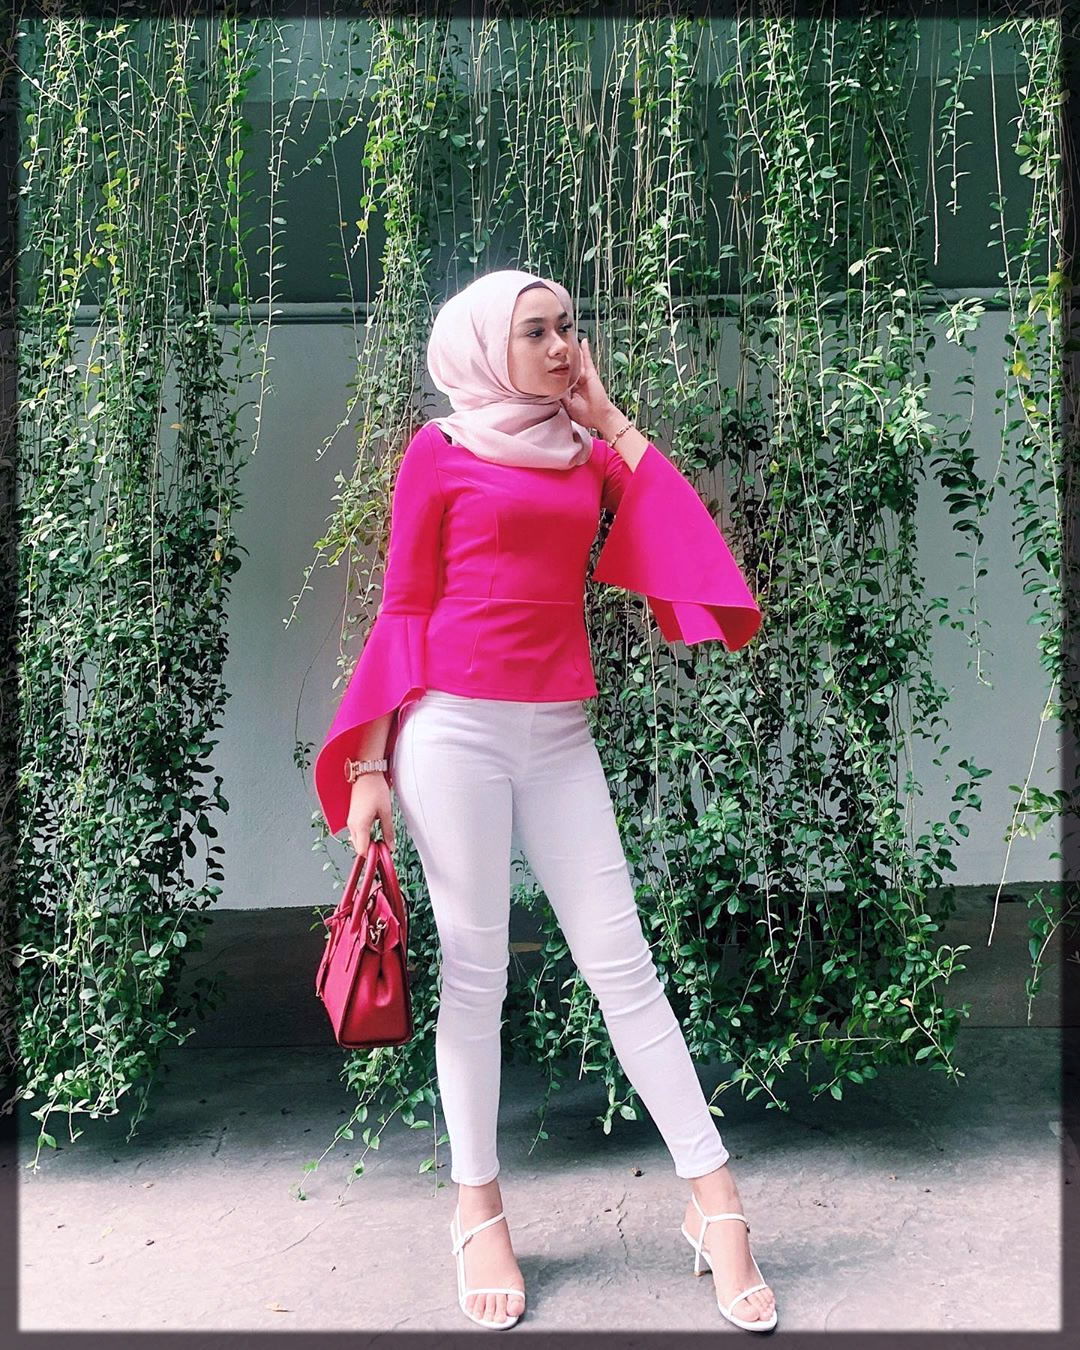 white pant with pink hiajb styles